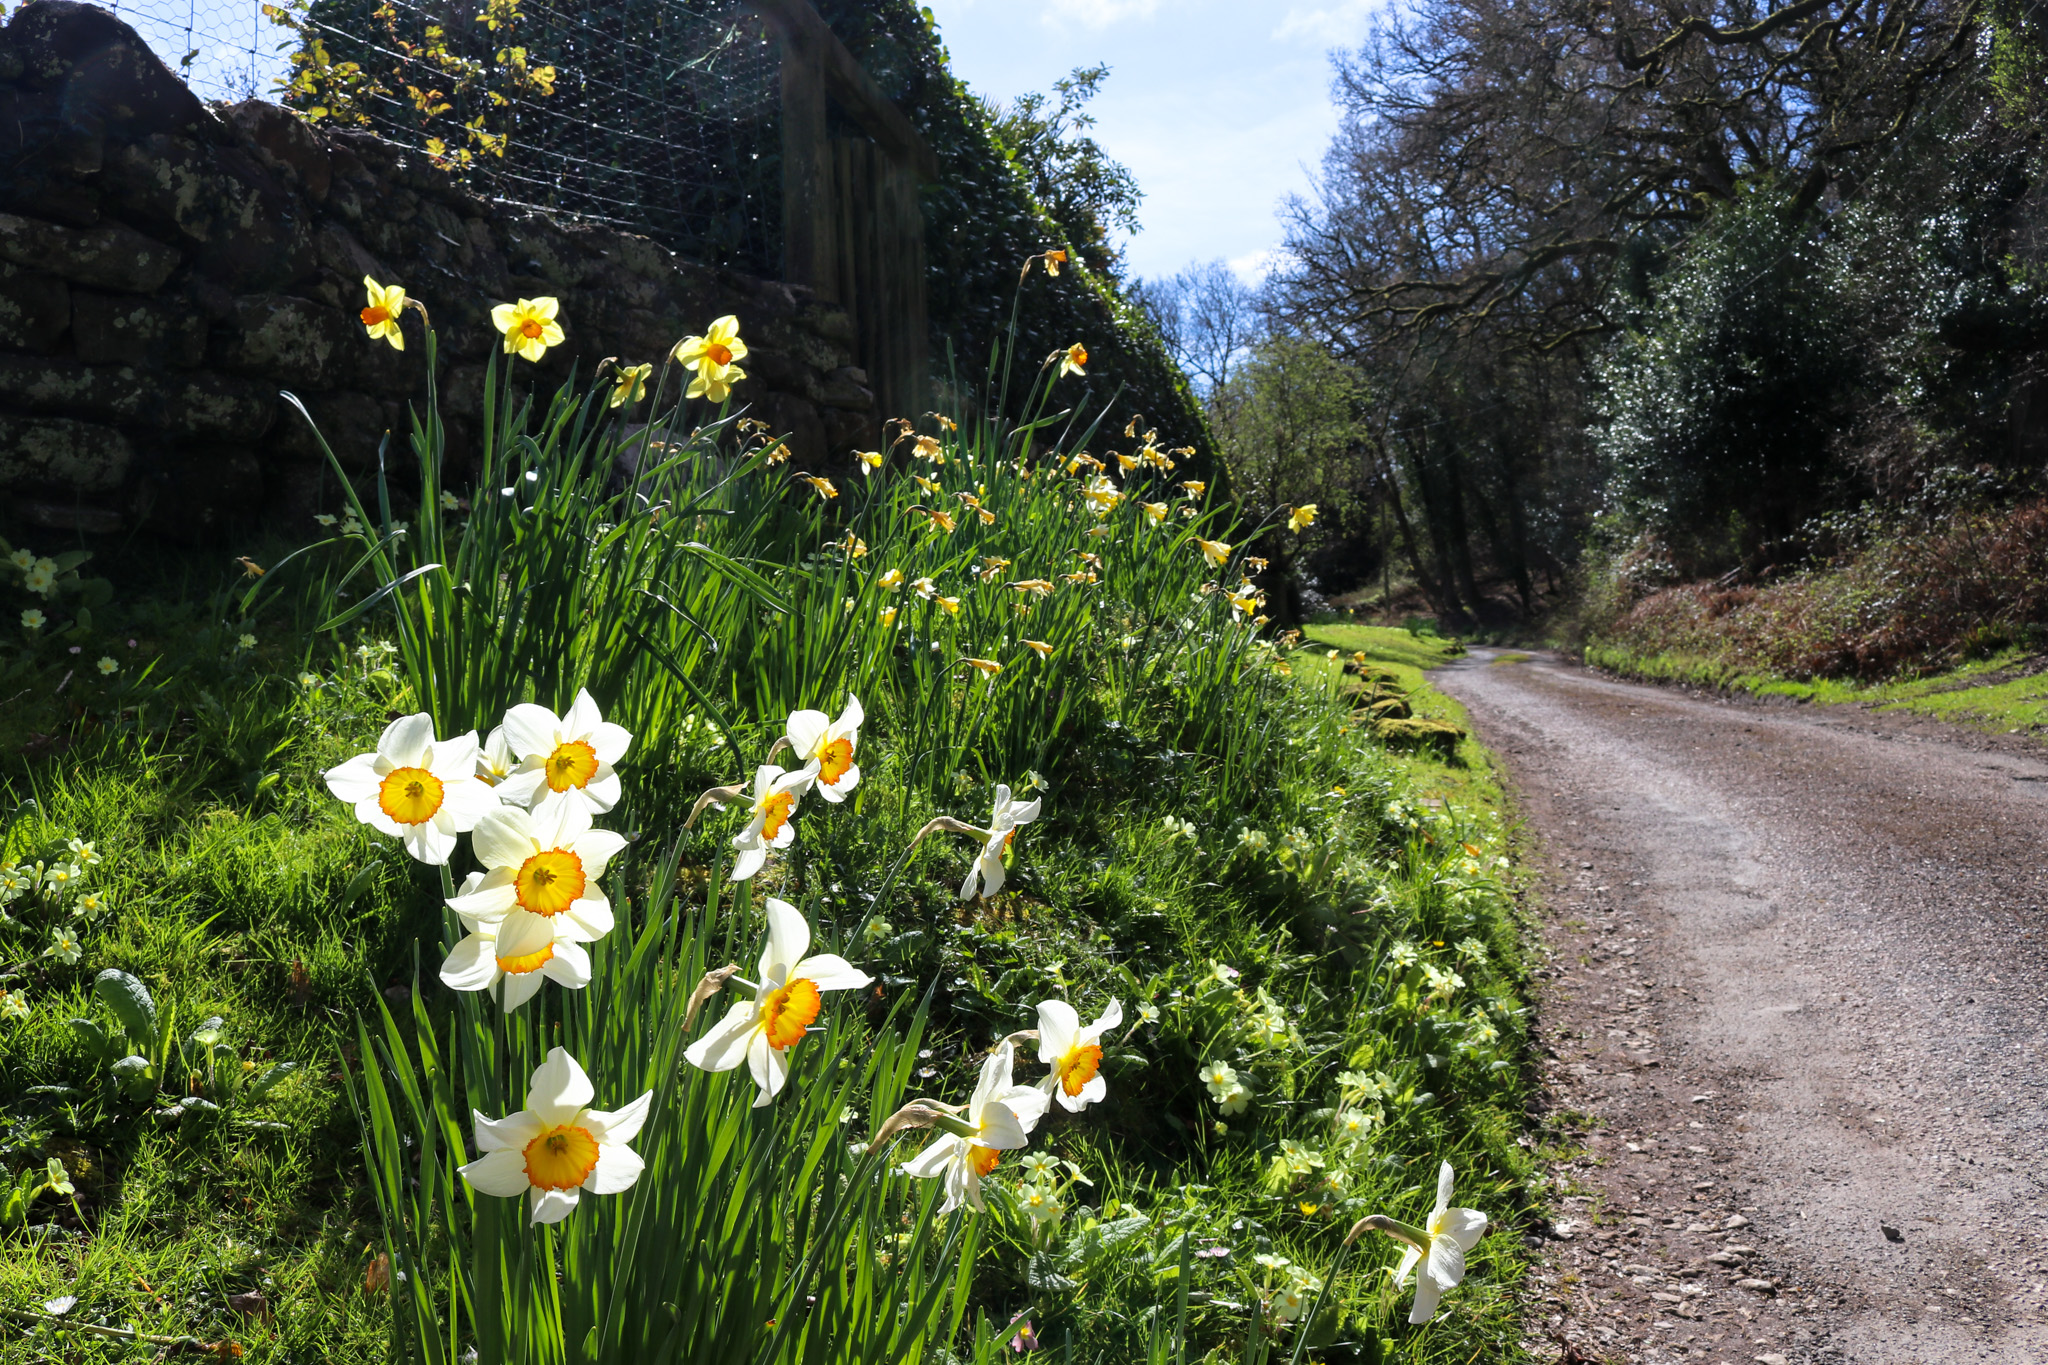 Daffodils growing on the side of the road in Arne